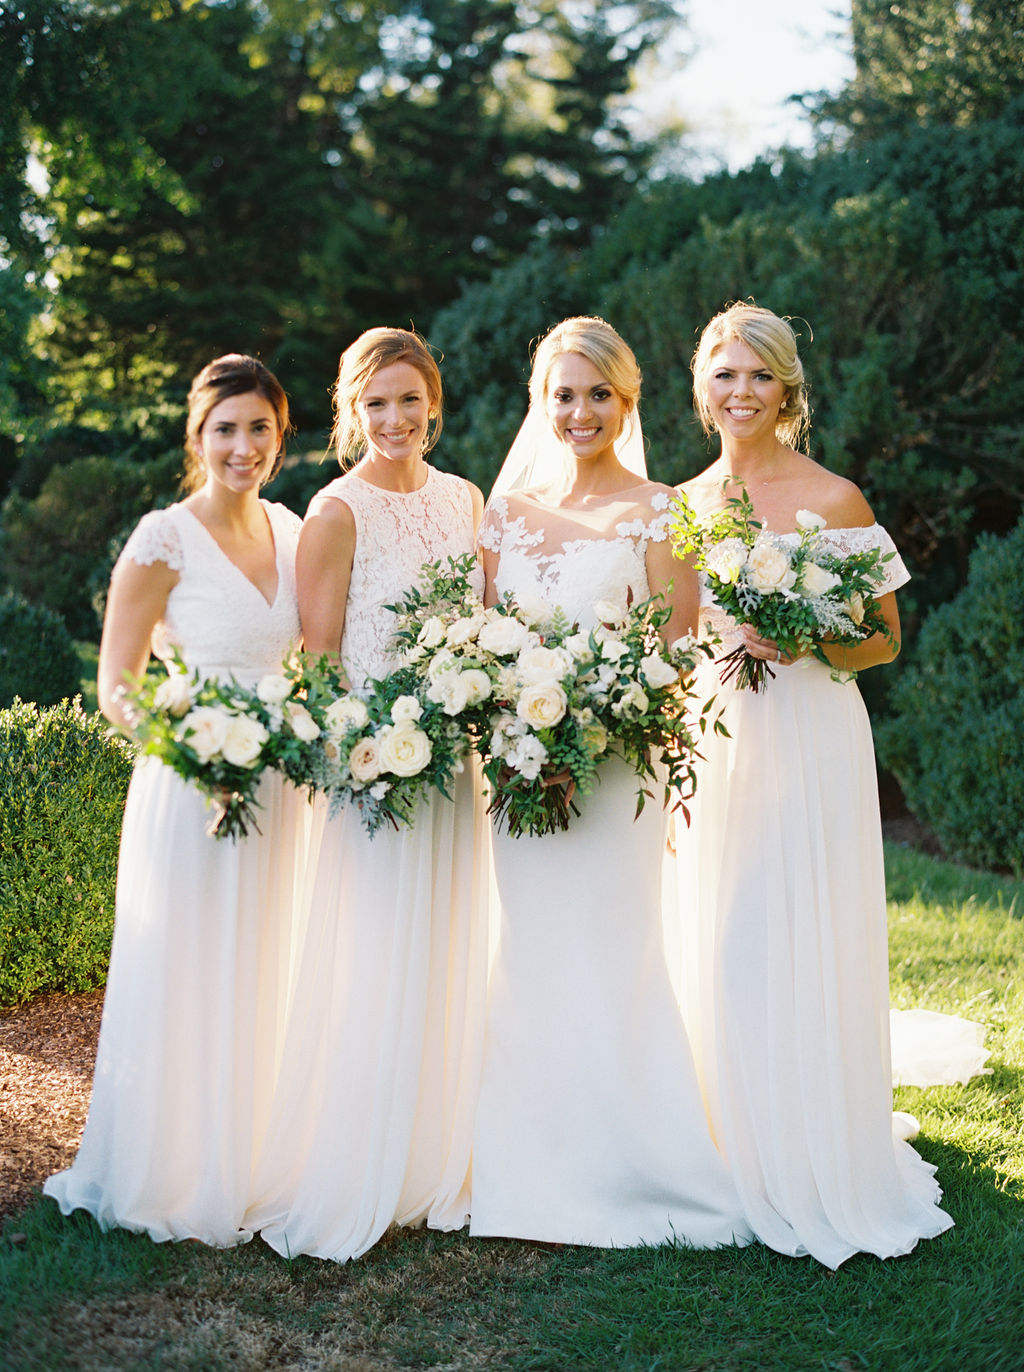 kristinsweeting_3RG_familyparty-0113.jpgAll white bridesmaid dresses with white flowers and greenery. Nashville Wedding Floral Design.